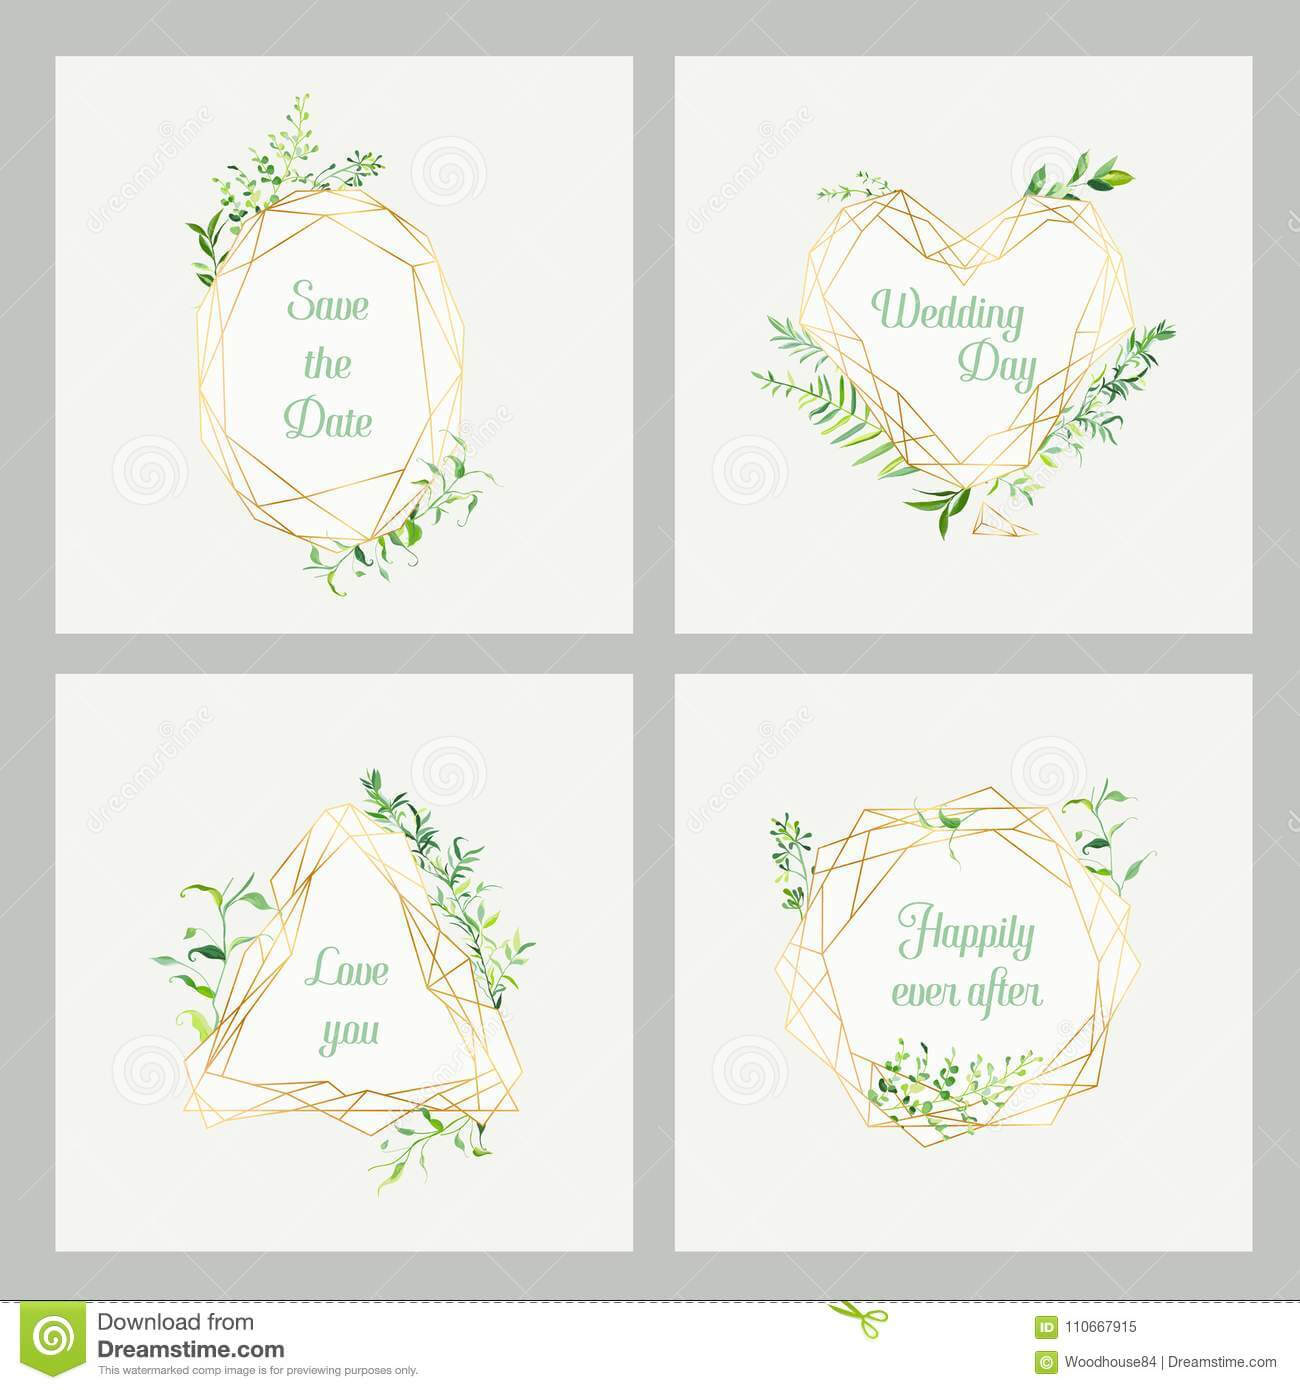 Wedding Invitation Floral Templates Set. Save The Date With Celebrate It Templates Place Cards